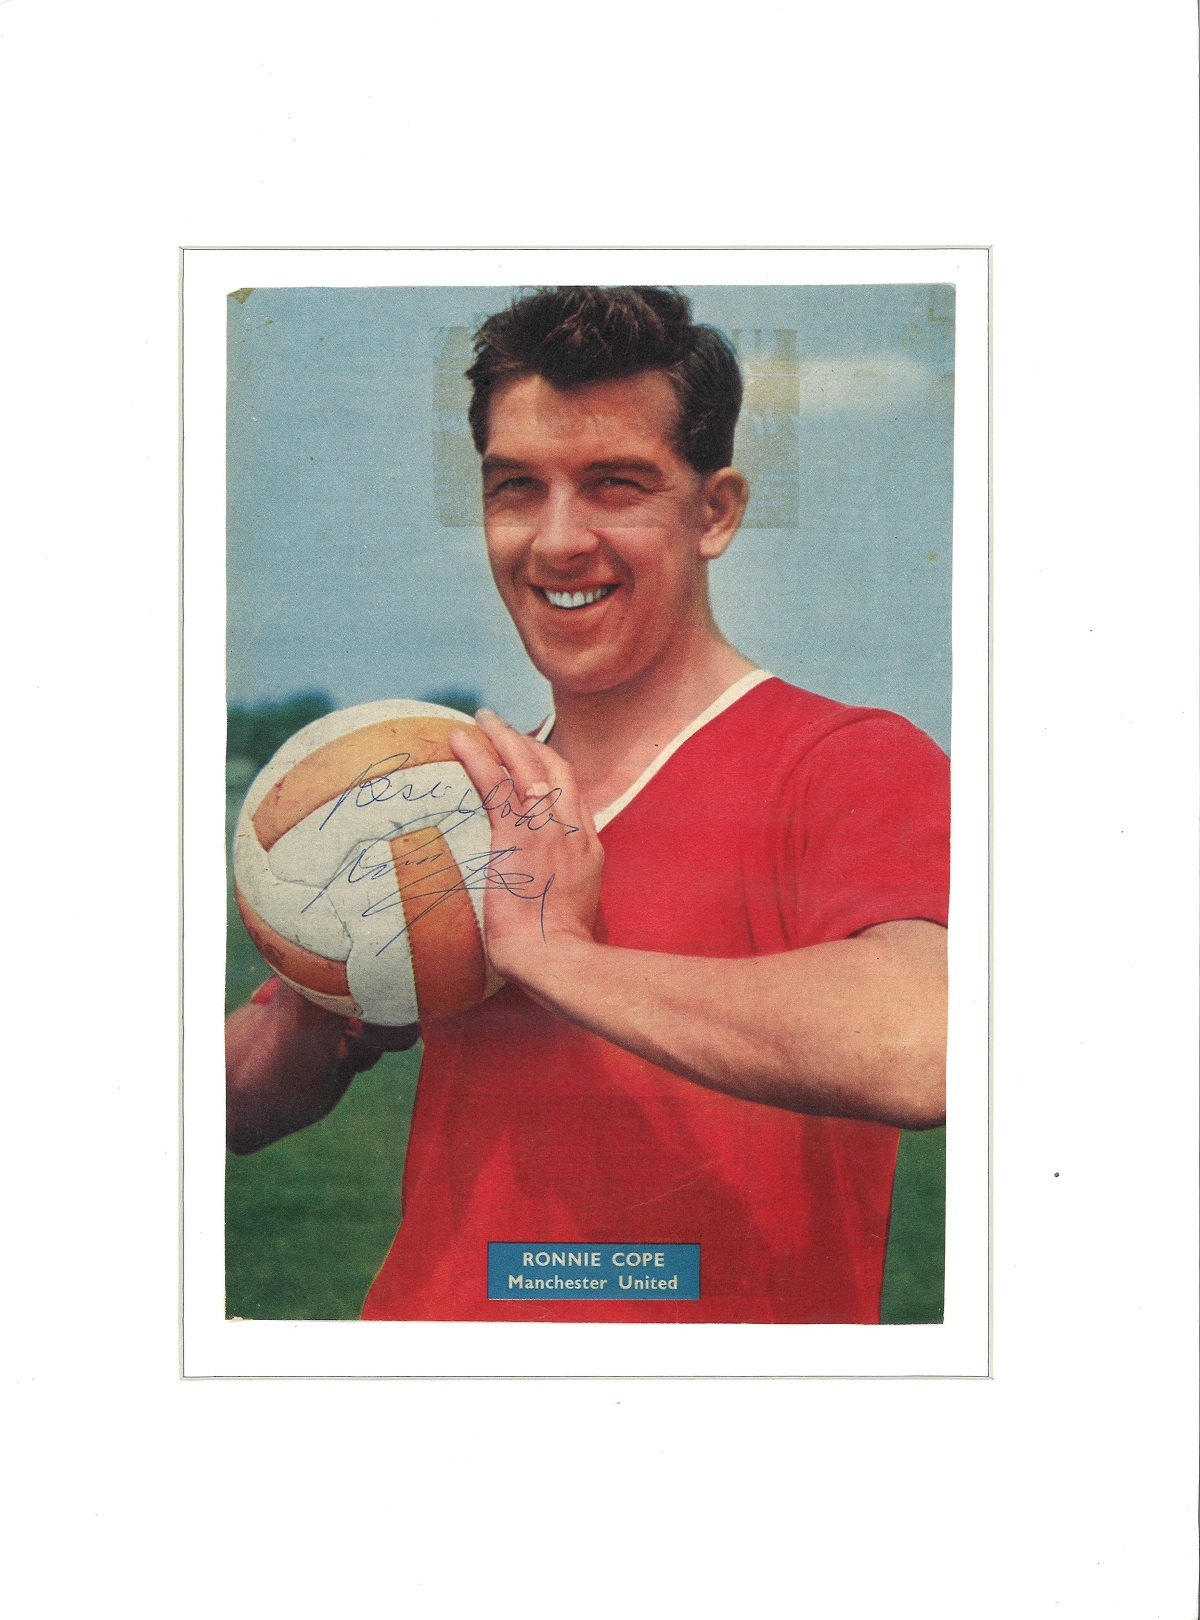 Football Ronnie Cope signed 16x12 mounted colour magazine photo. Ronald Cope (5 October 1934 - 27